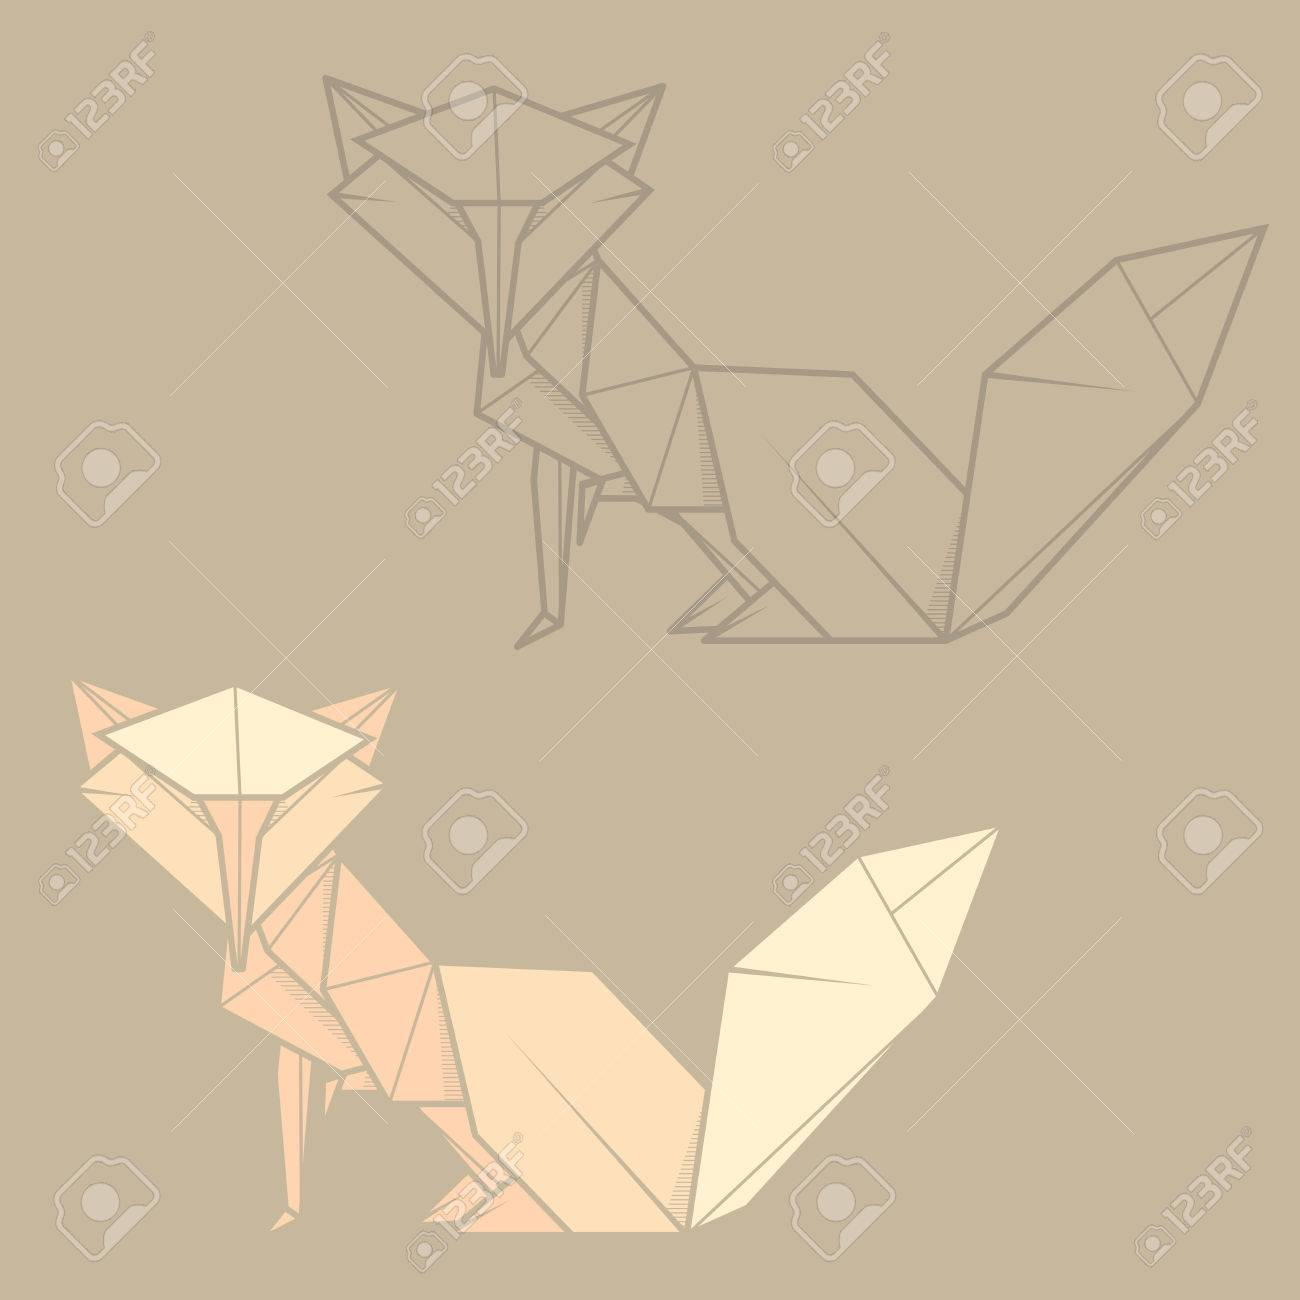 Set Vector Simple Illustration Paper Origami And Contour Drawing Of Fox Stock